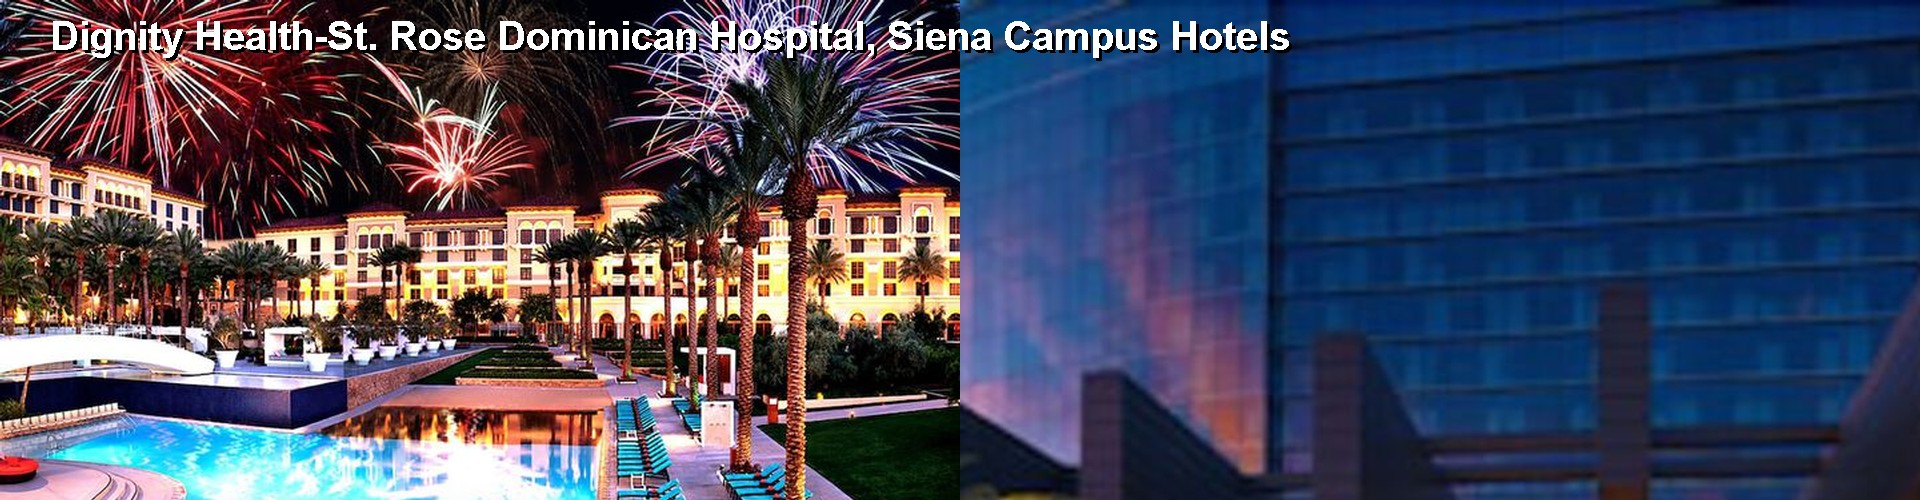 5 Best Hotels near St Rose Dominican Hospital